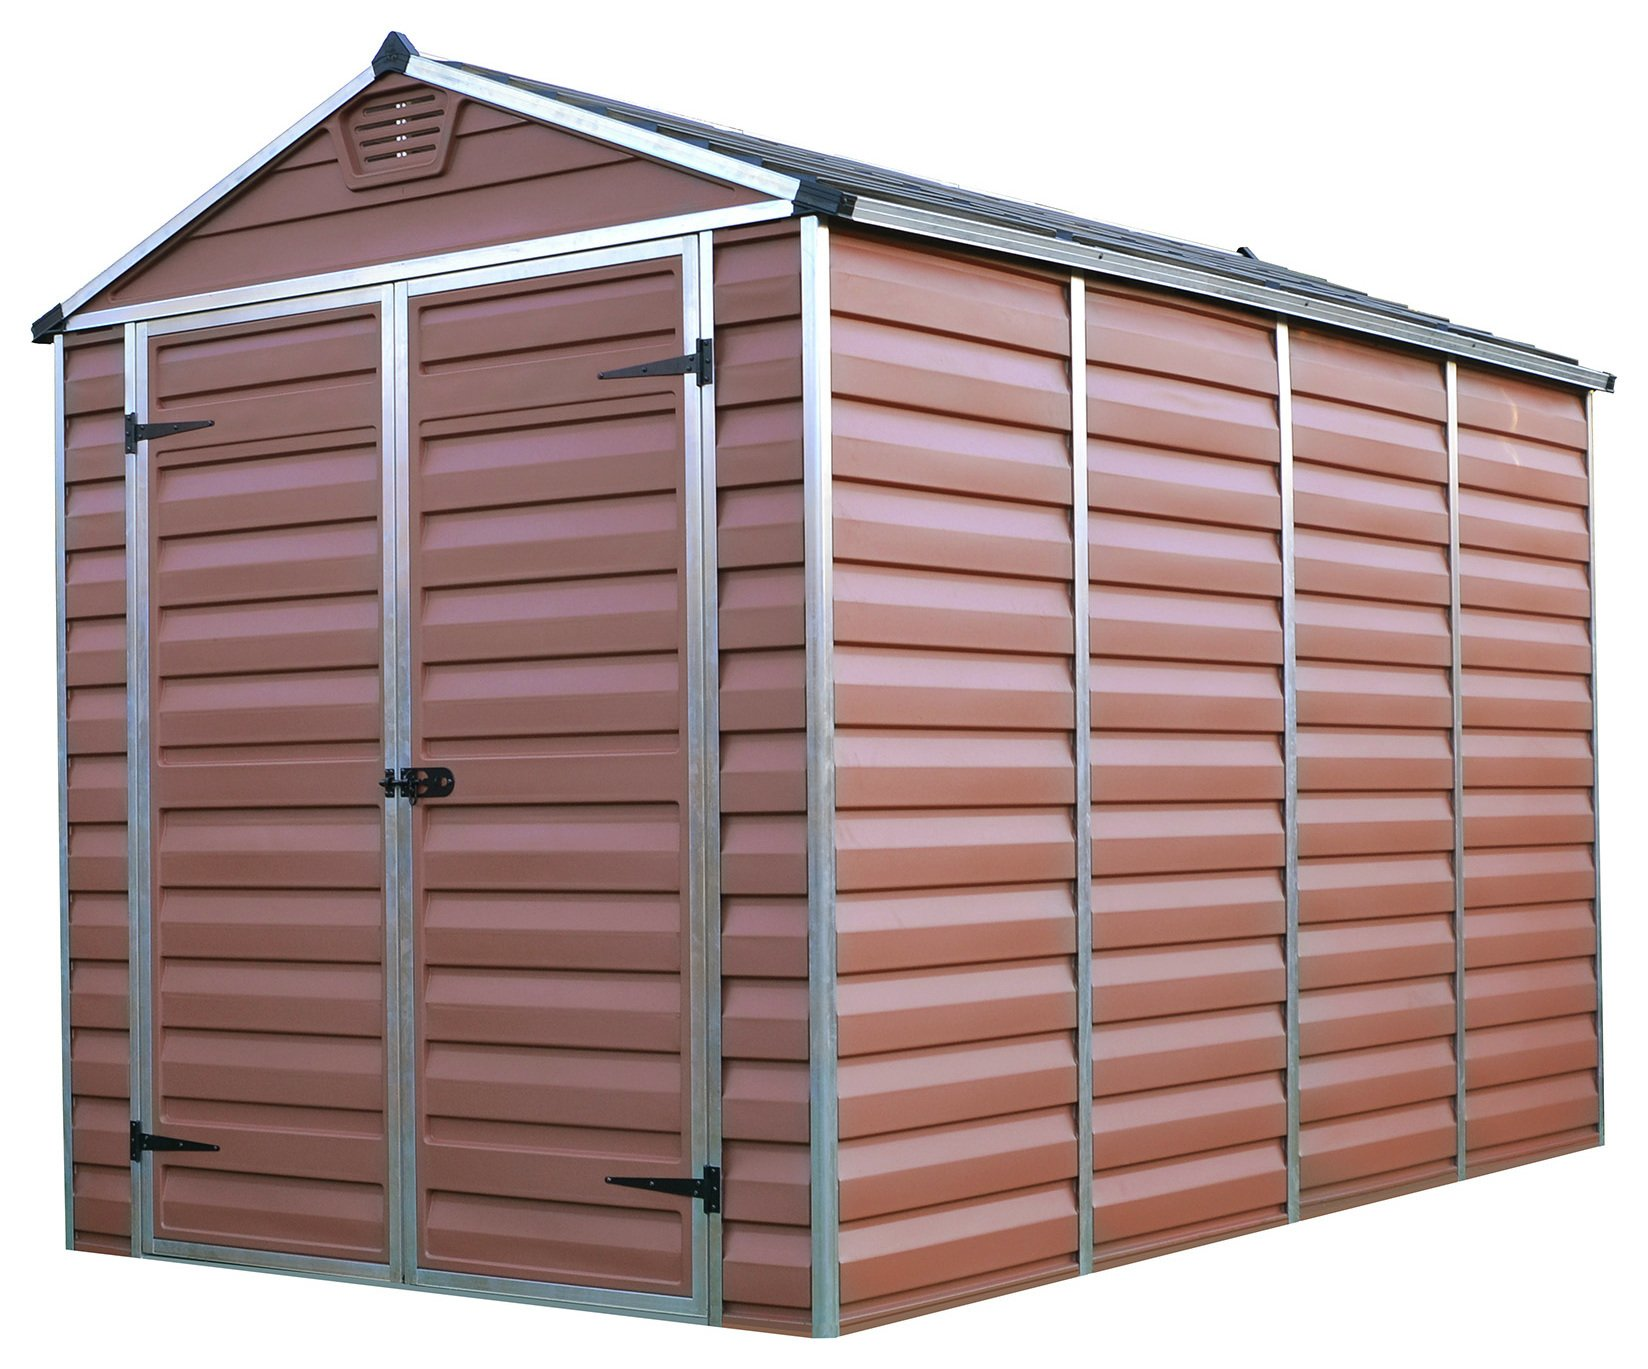 Palram Skylight Plastic 6 x 10ft Garden Shed - Amber Best Price, Cheapest Prices